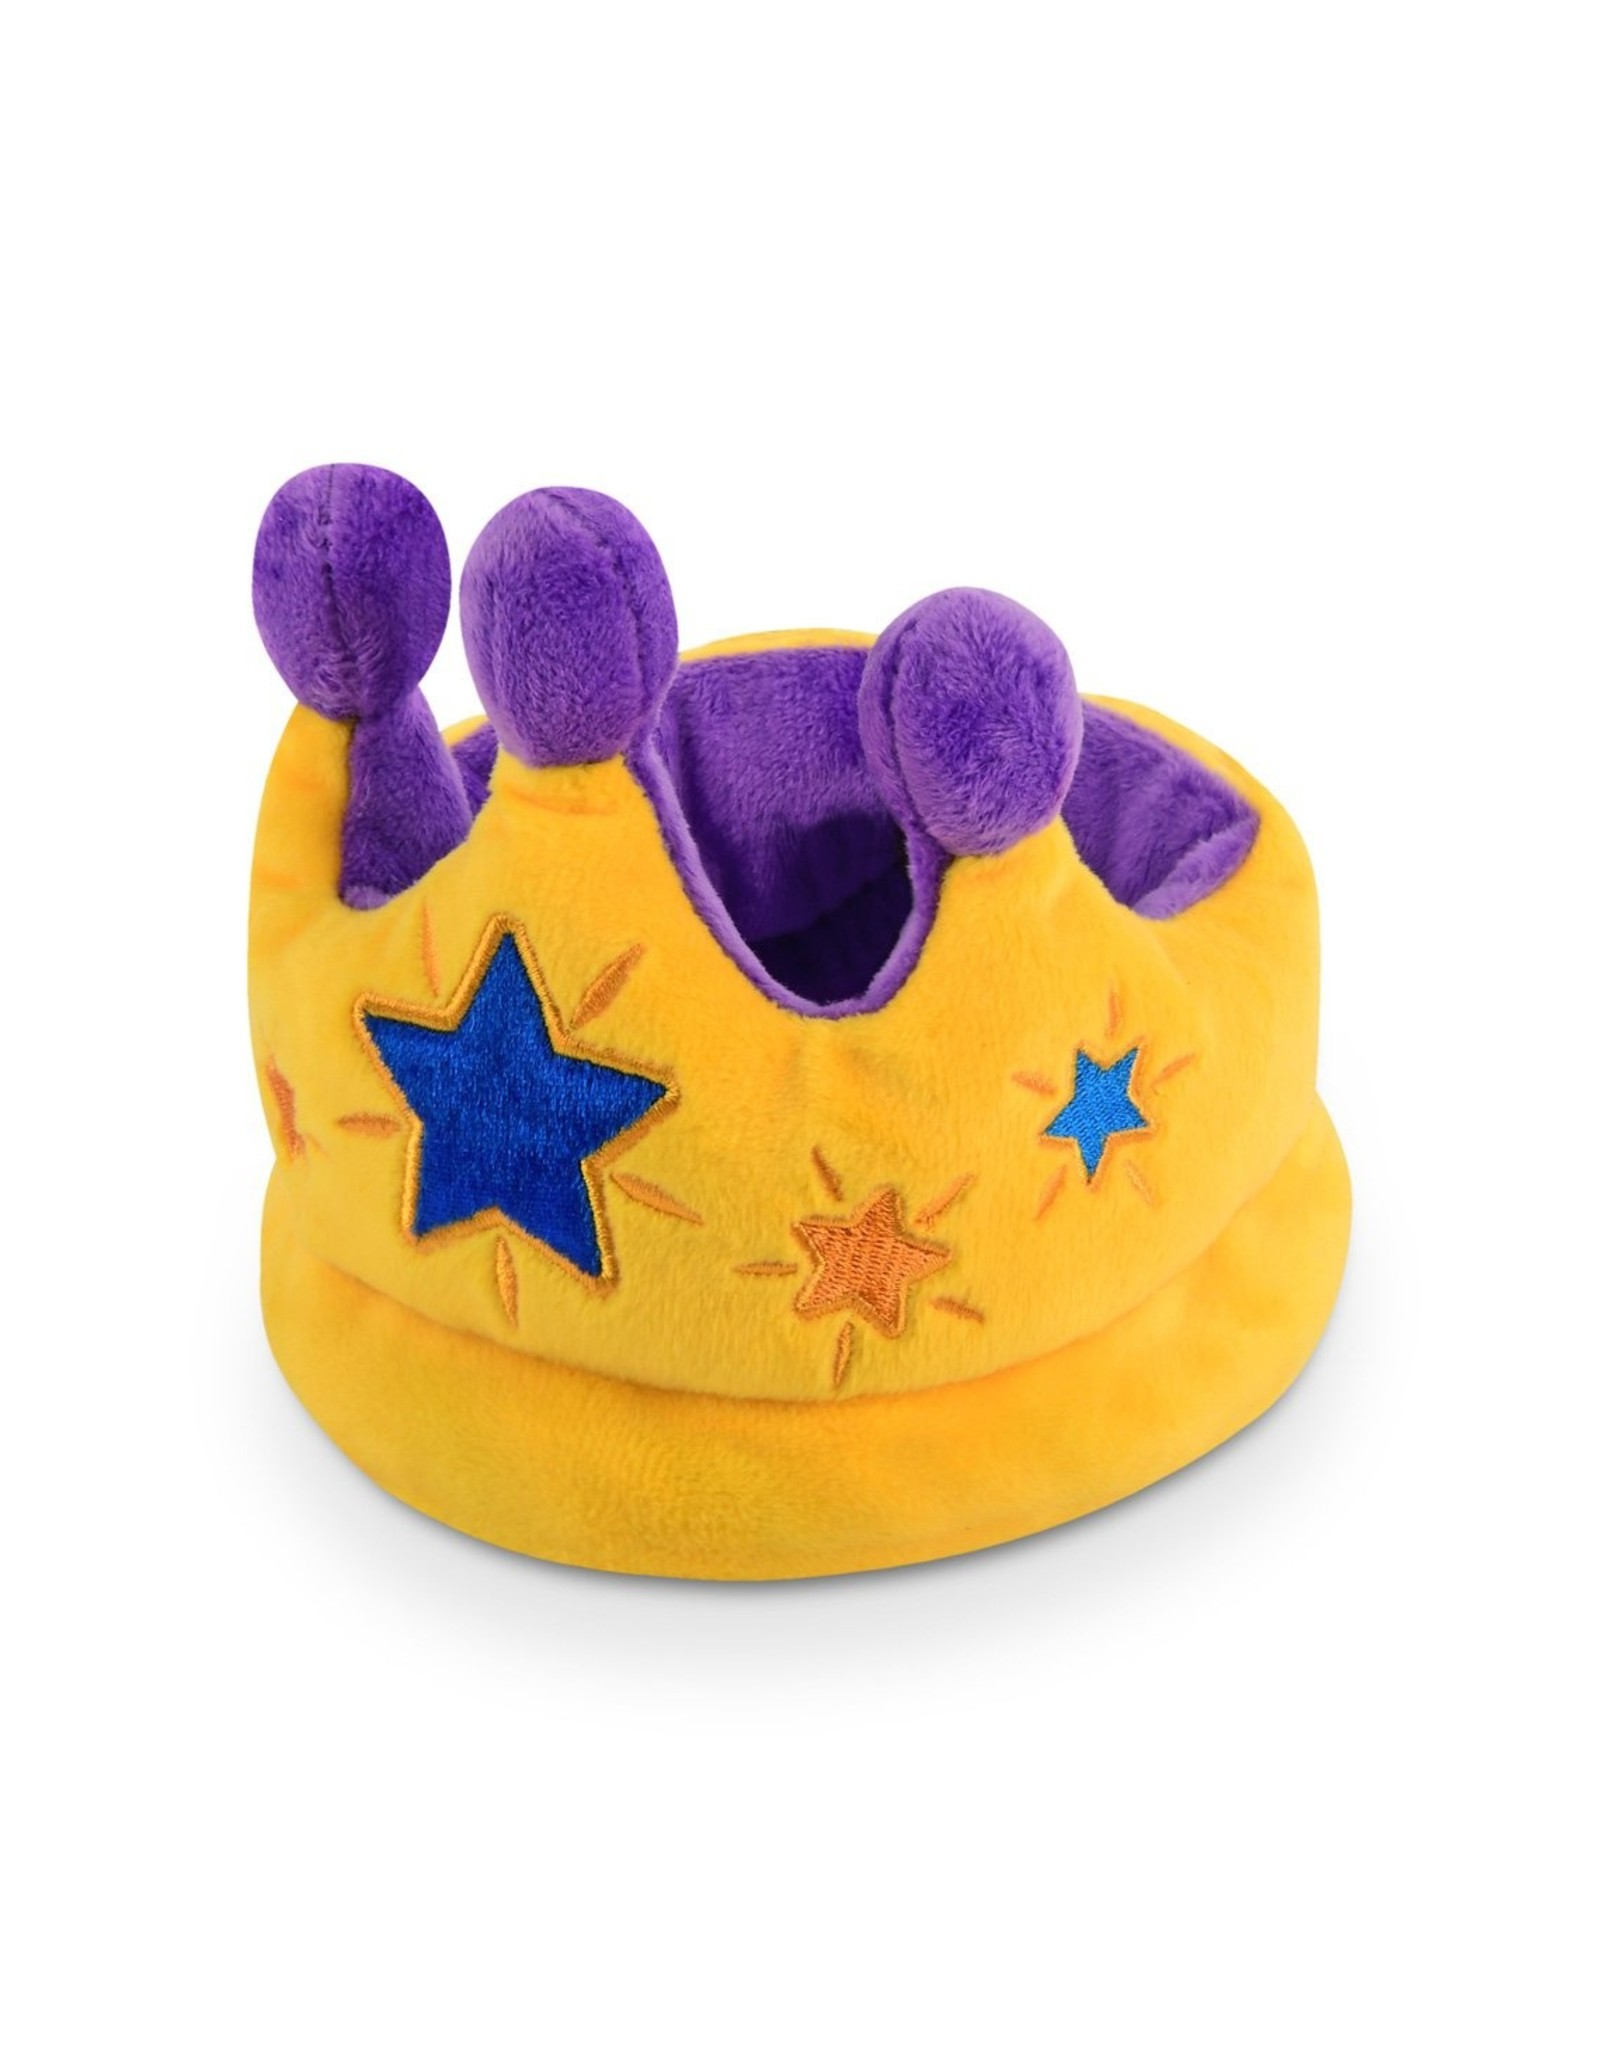 P.L.A.Y. Pet Lifestyle and You PLAY CANINE CROWN PLUSH TOY